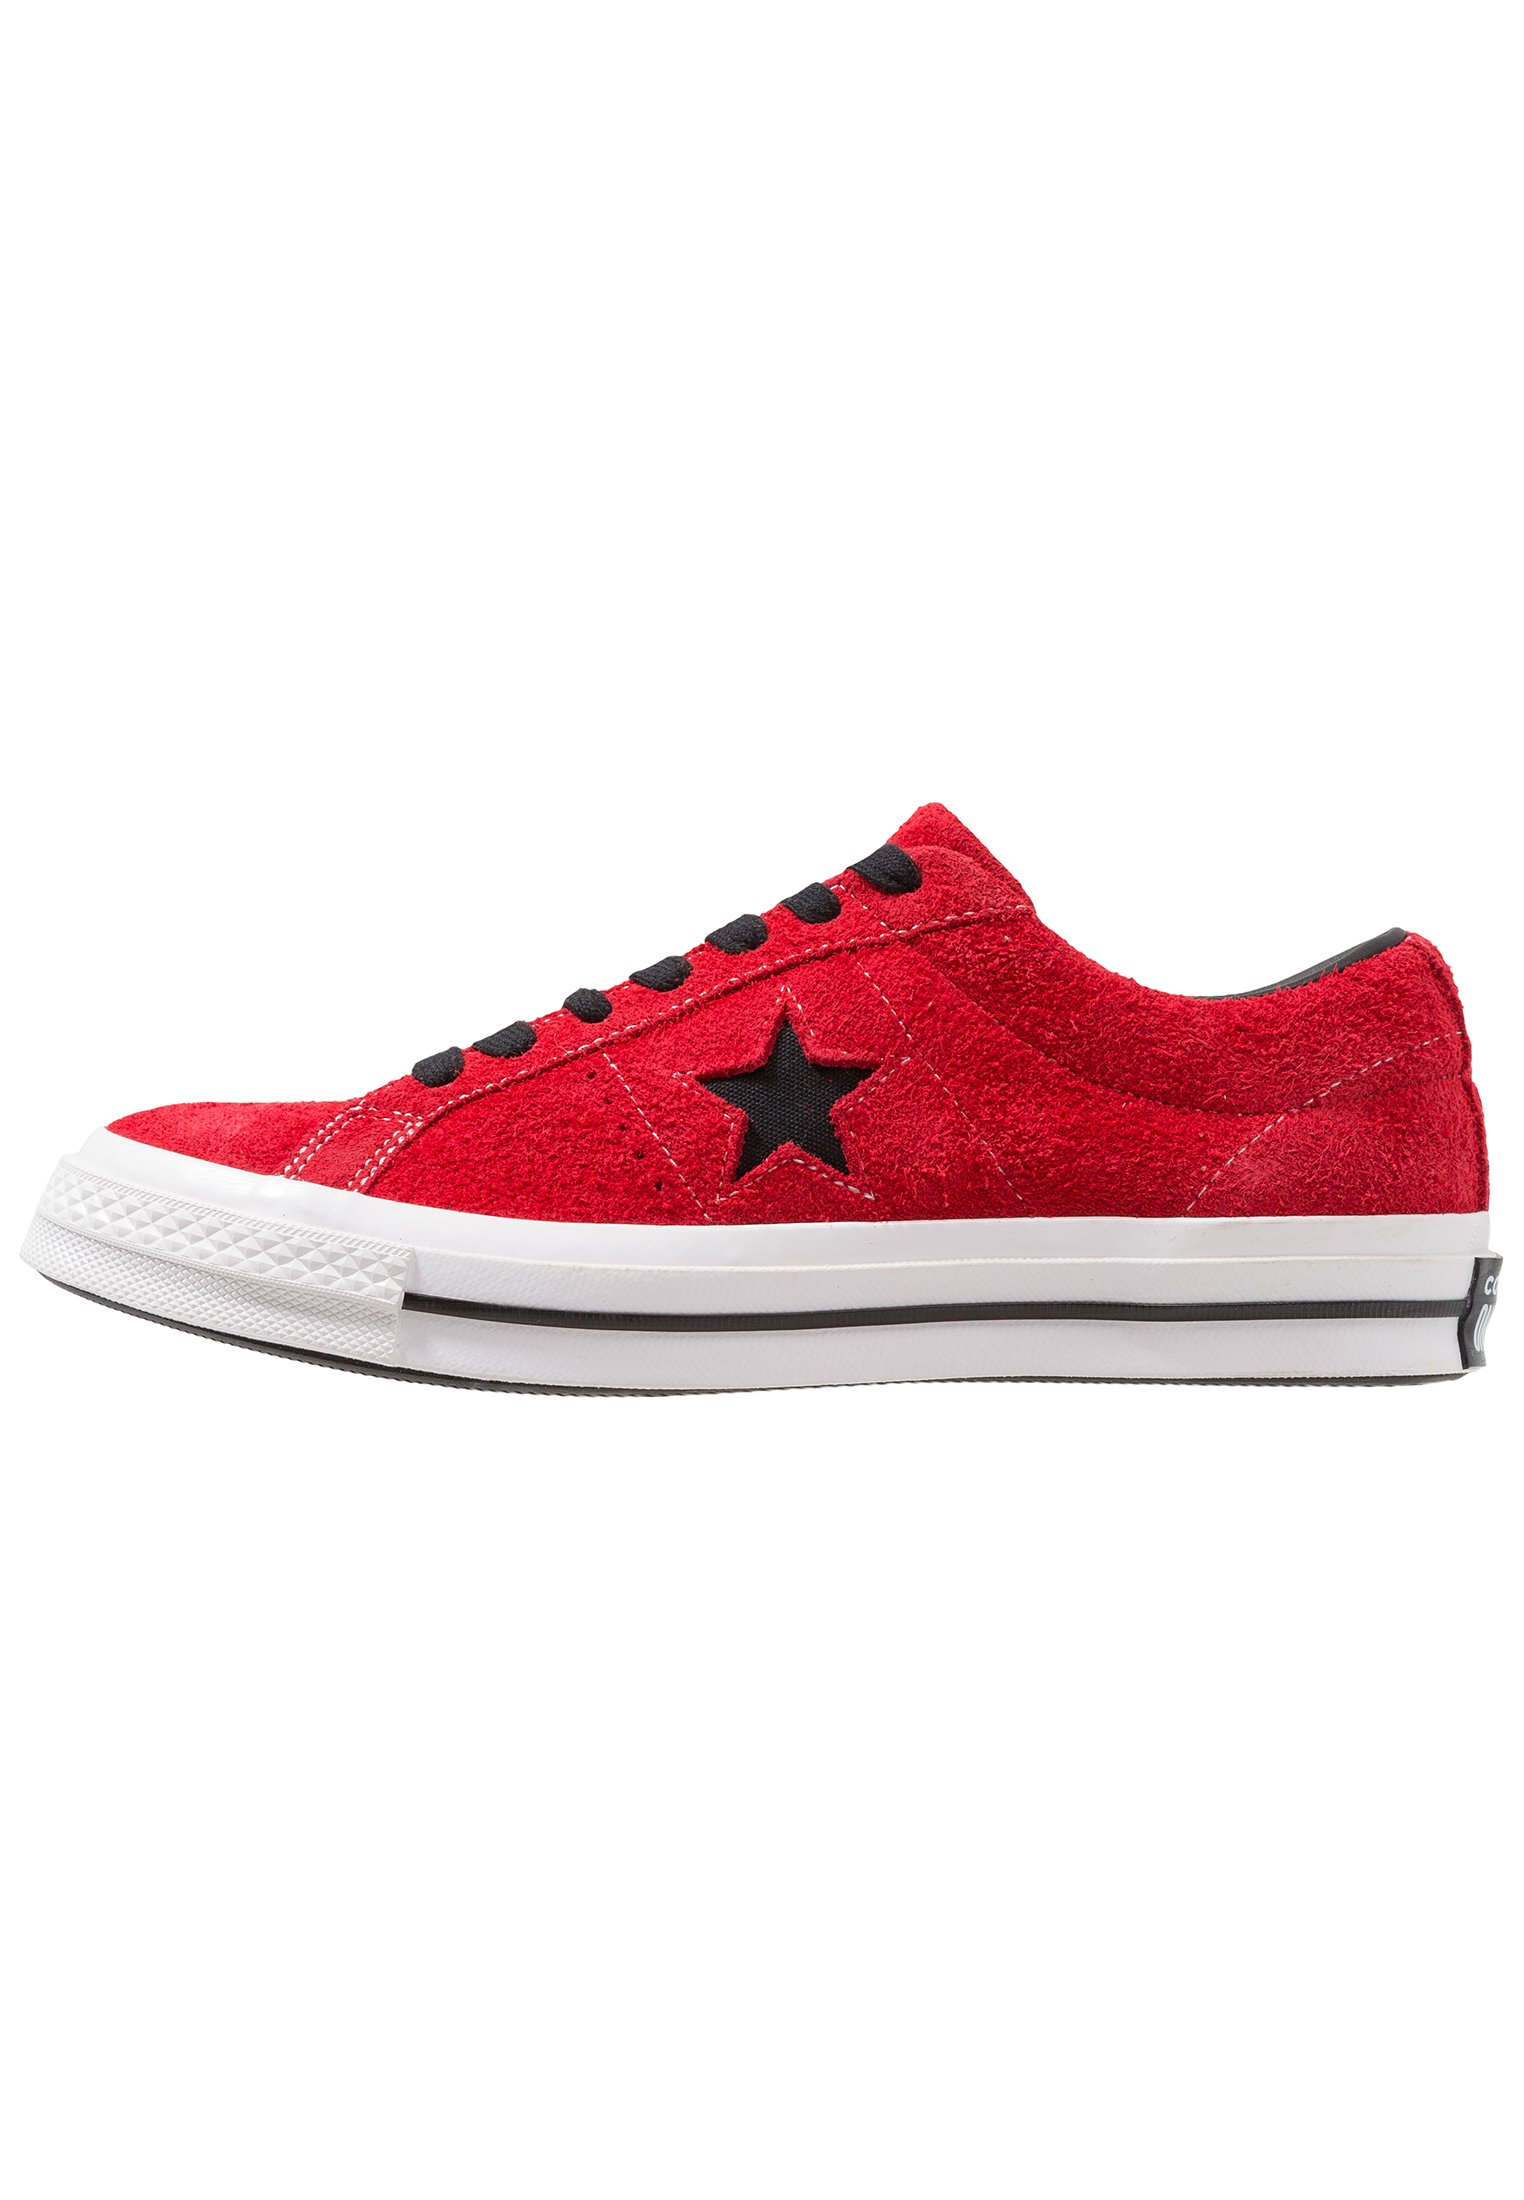 ONE STAR Sneaker low enamel redblackwhite